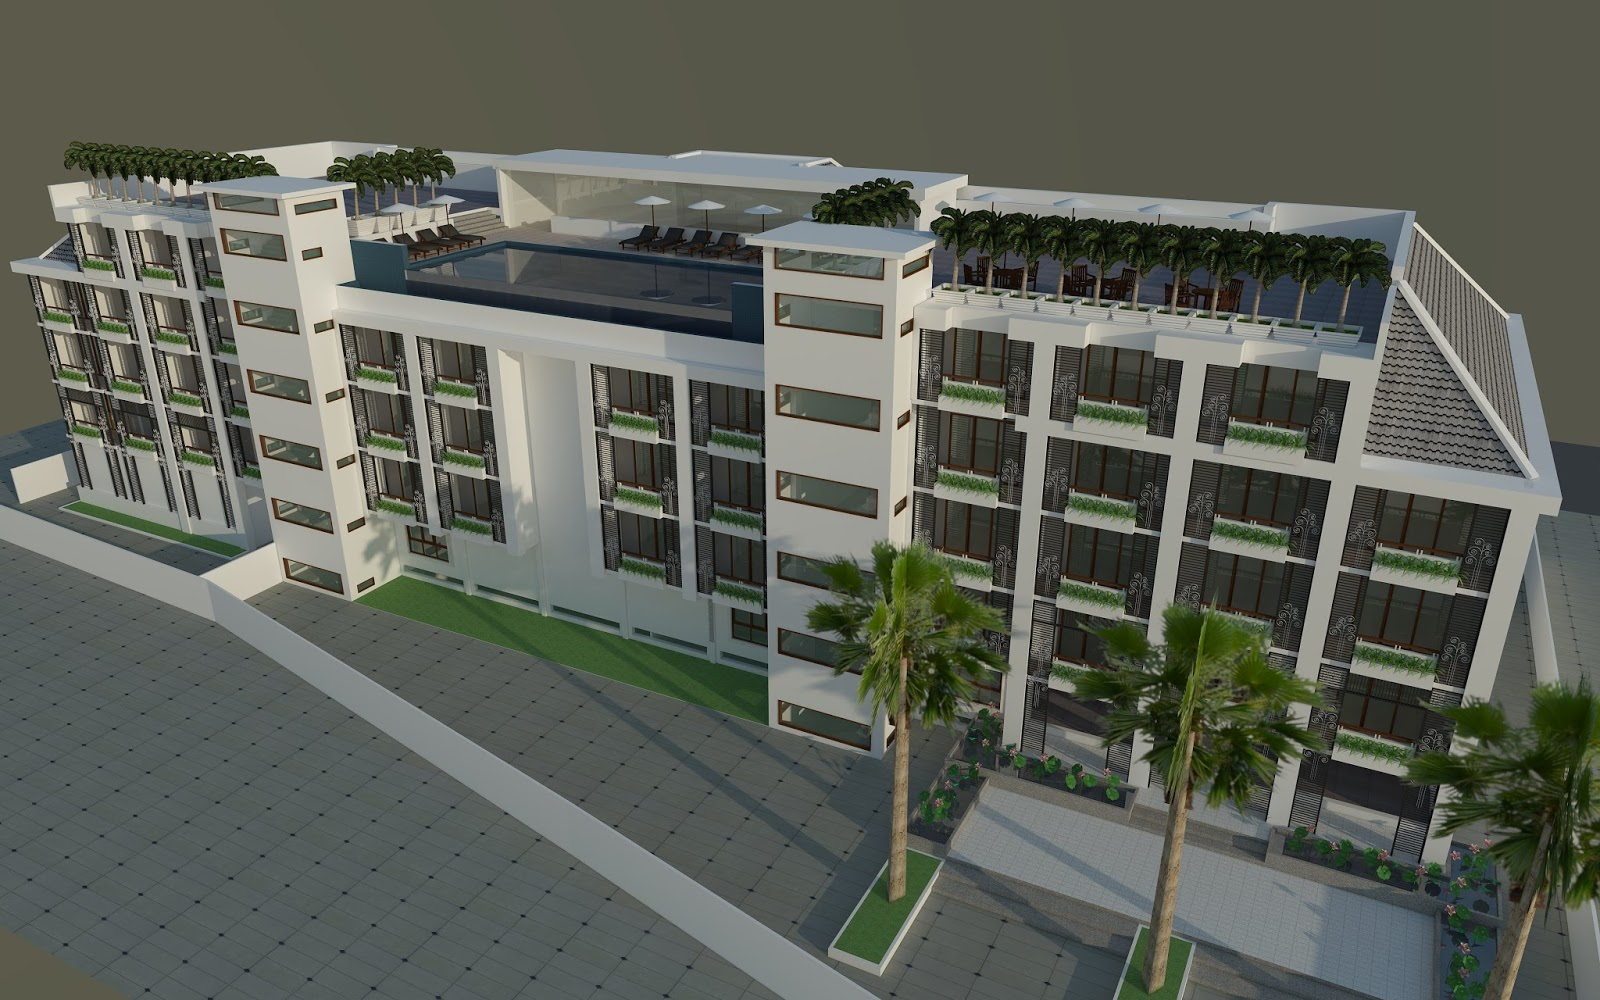 Architect hotel exterior design sketchup model ref 001 for Architectural design with sketchup